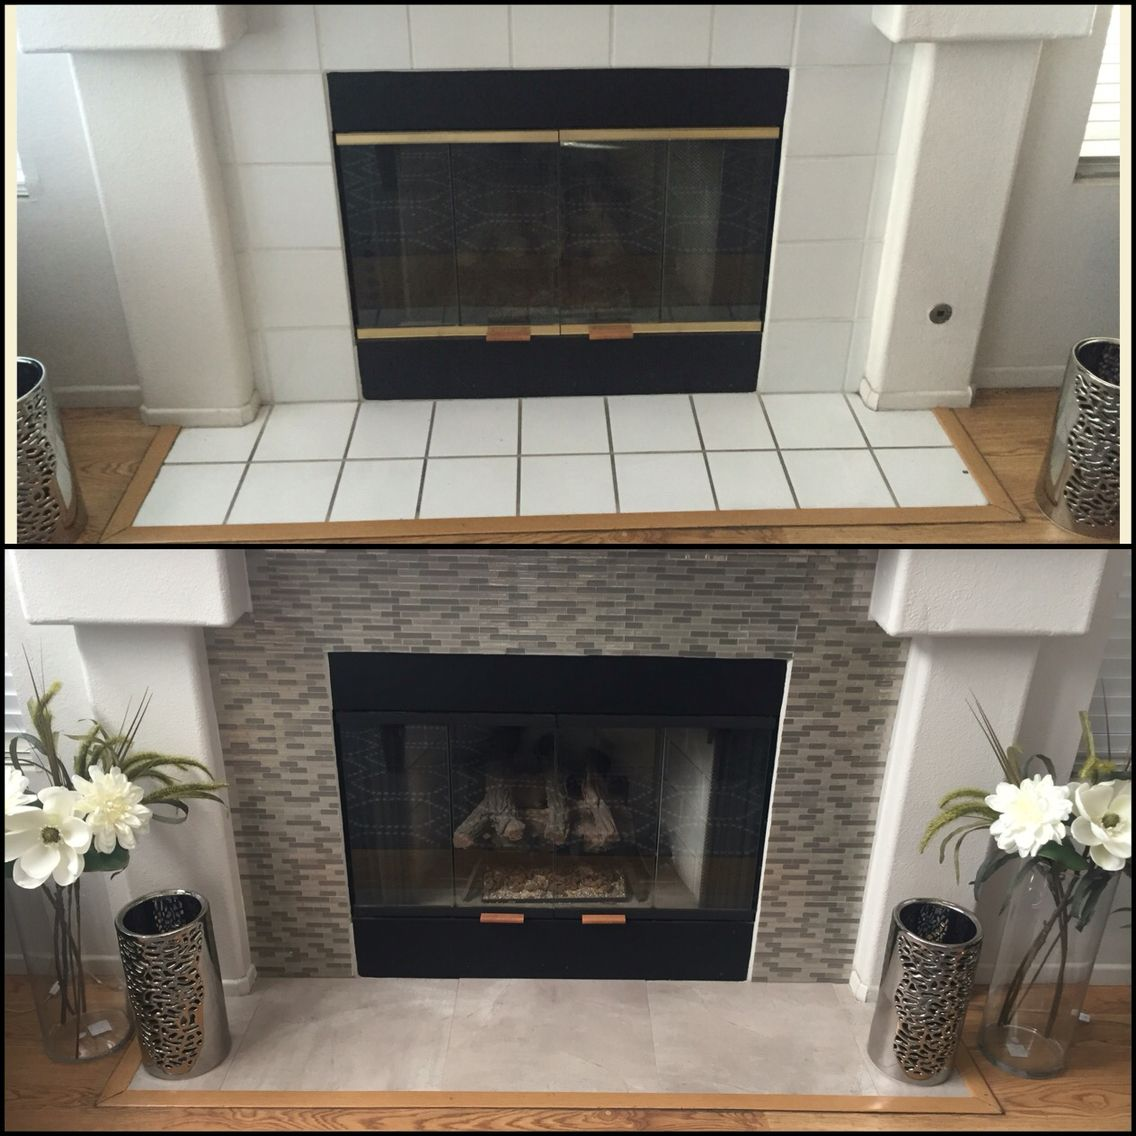 Diy Fireplace Makeover Under Smart Tiles Muretto Beige Home Depot Rustoleum High